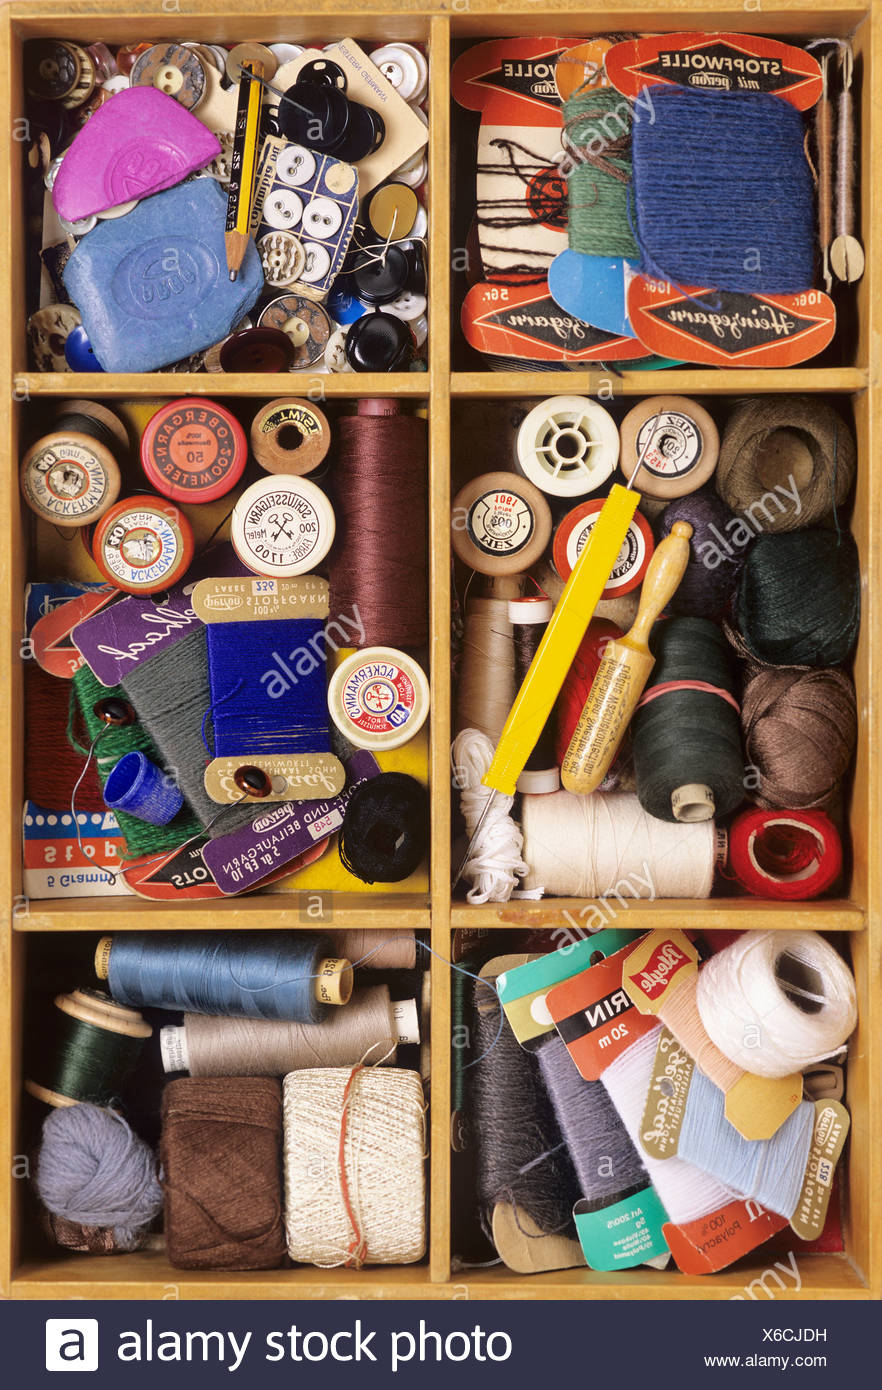 Knitting materials in a wooden box - Stock Image